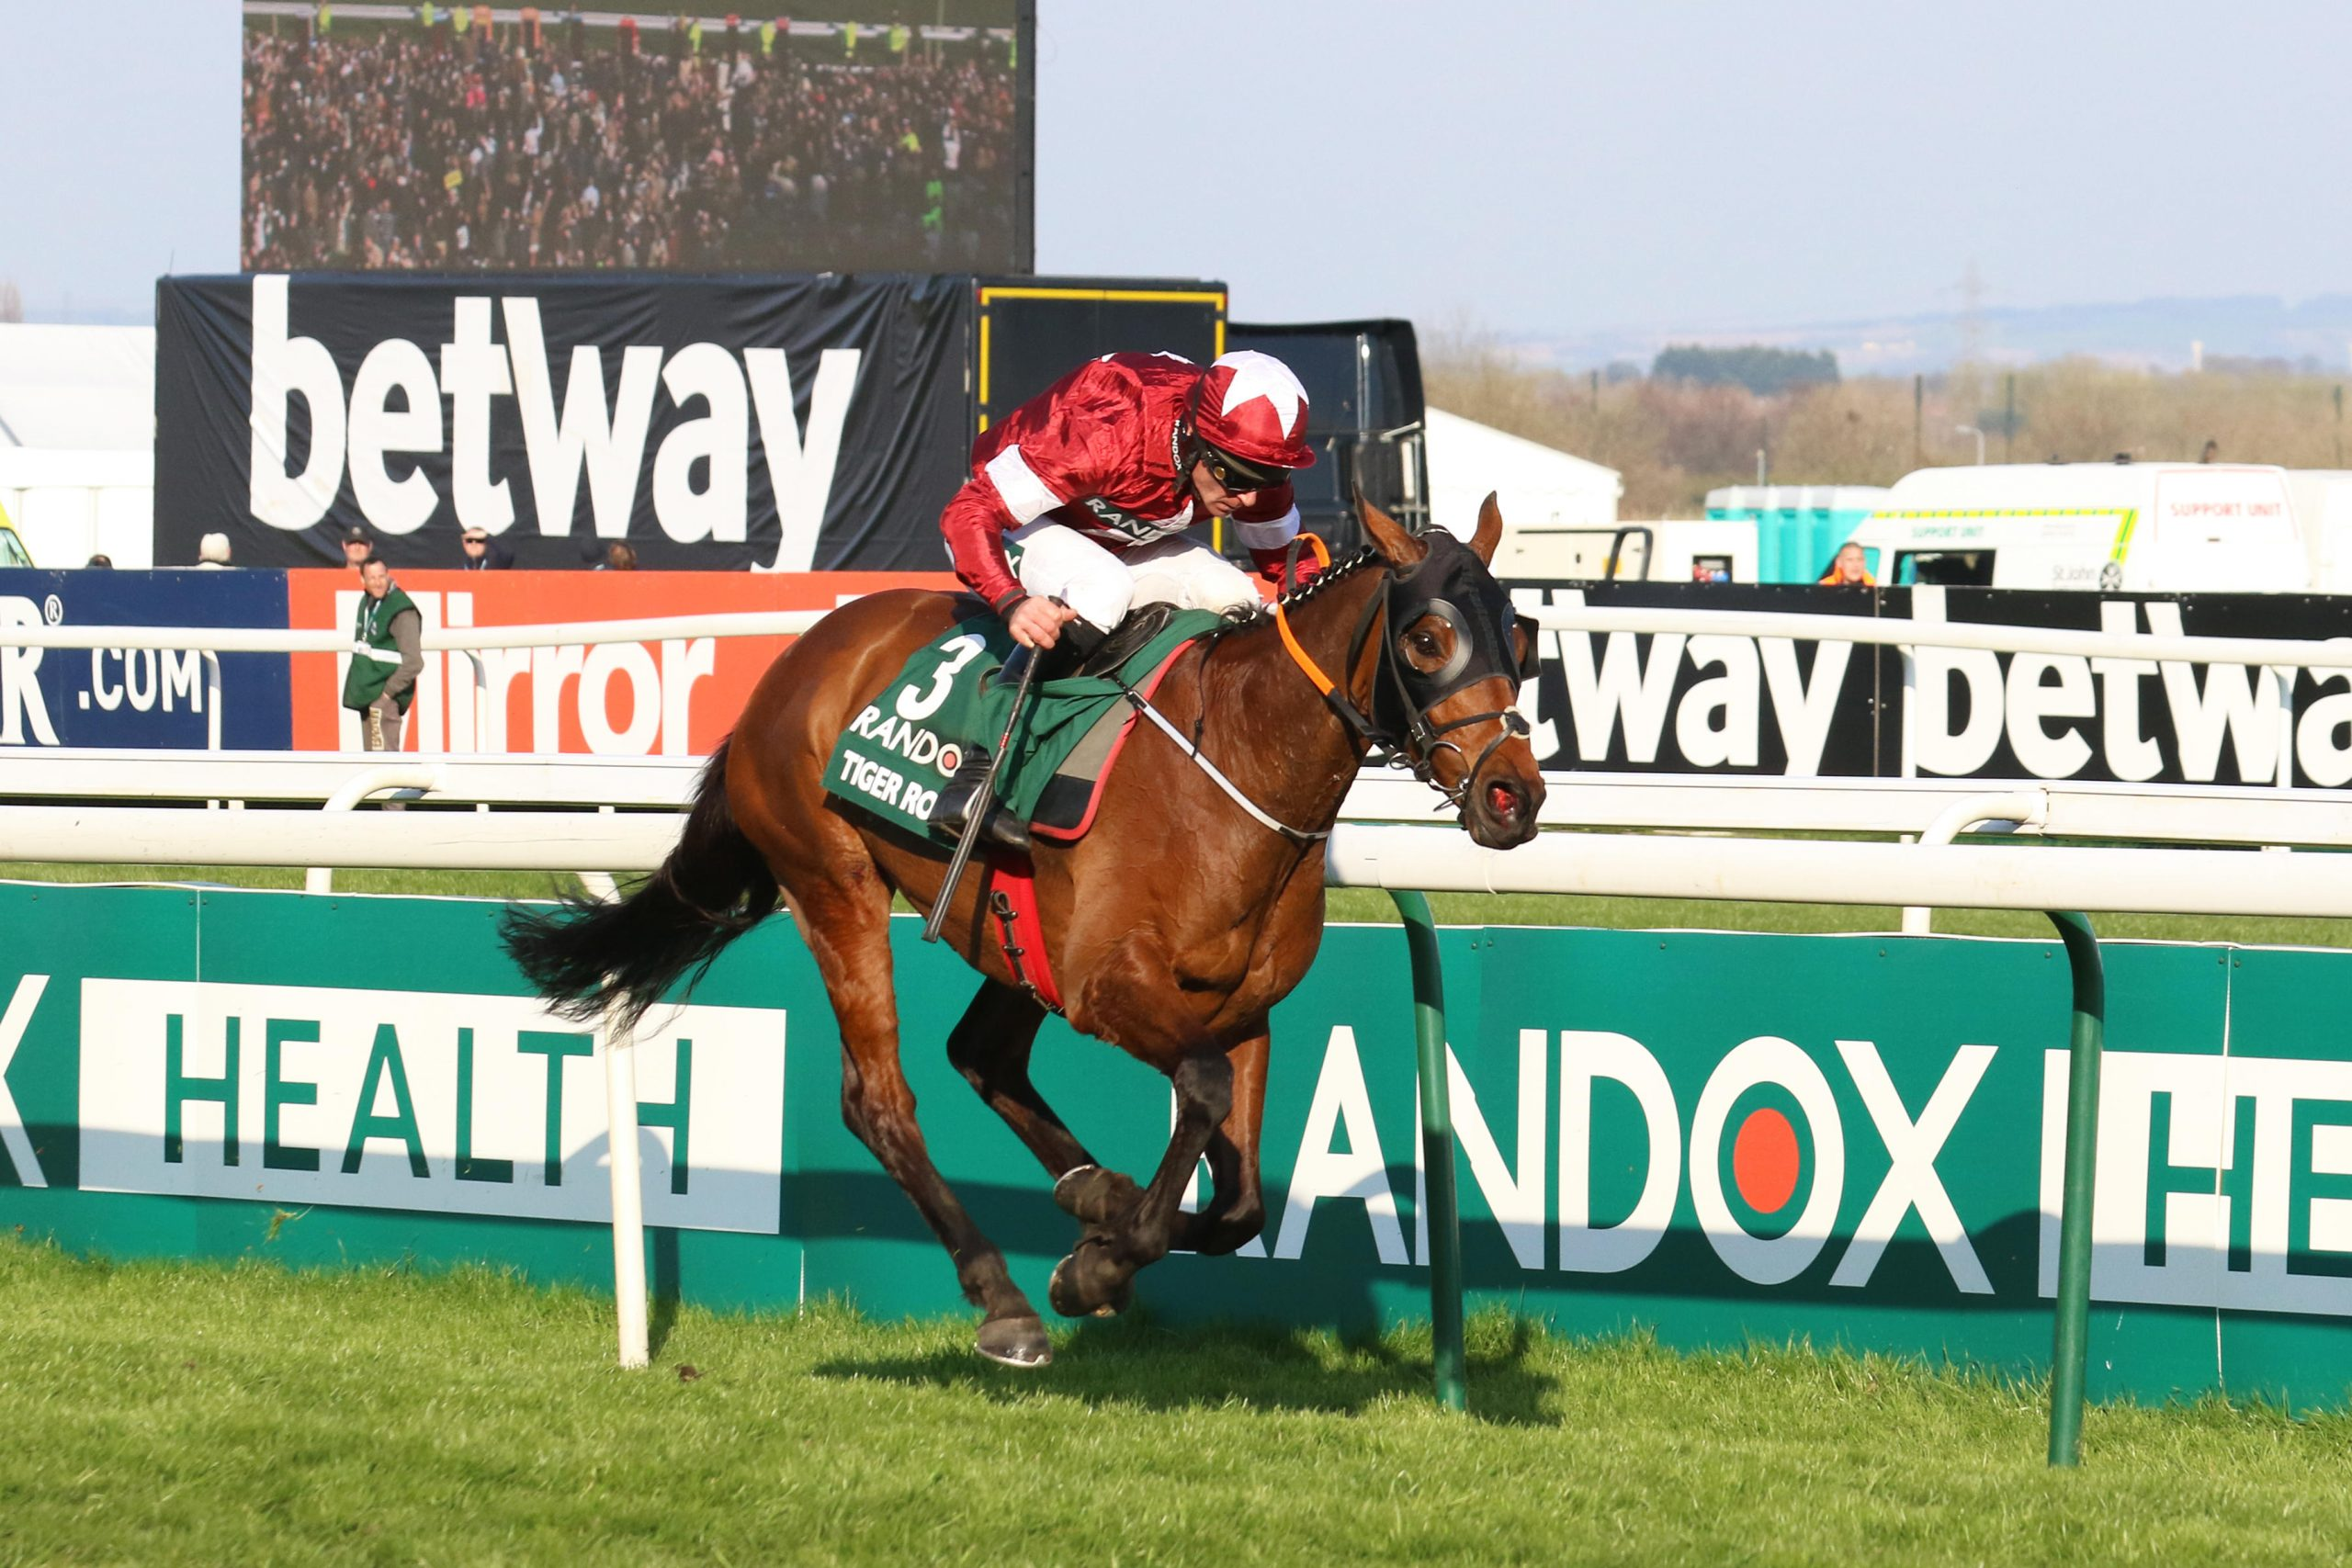 T3509E AINTREE, Liverpool, UK. 6th Apr, 2019. Tiger Roll winner of the 2019 Randox Grand National ridden by D N Russell. He becomes the first horse to since Red Rum 45 years ago to win the hurdles event race back-to-back. 40 runners, 30 fences and more than four-and-a-quarter miles, the National is the ultimate test for horses and riders.